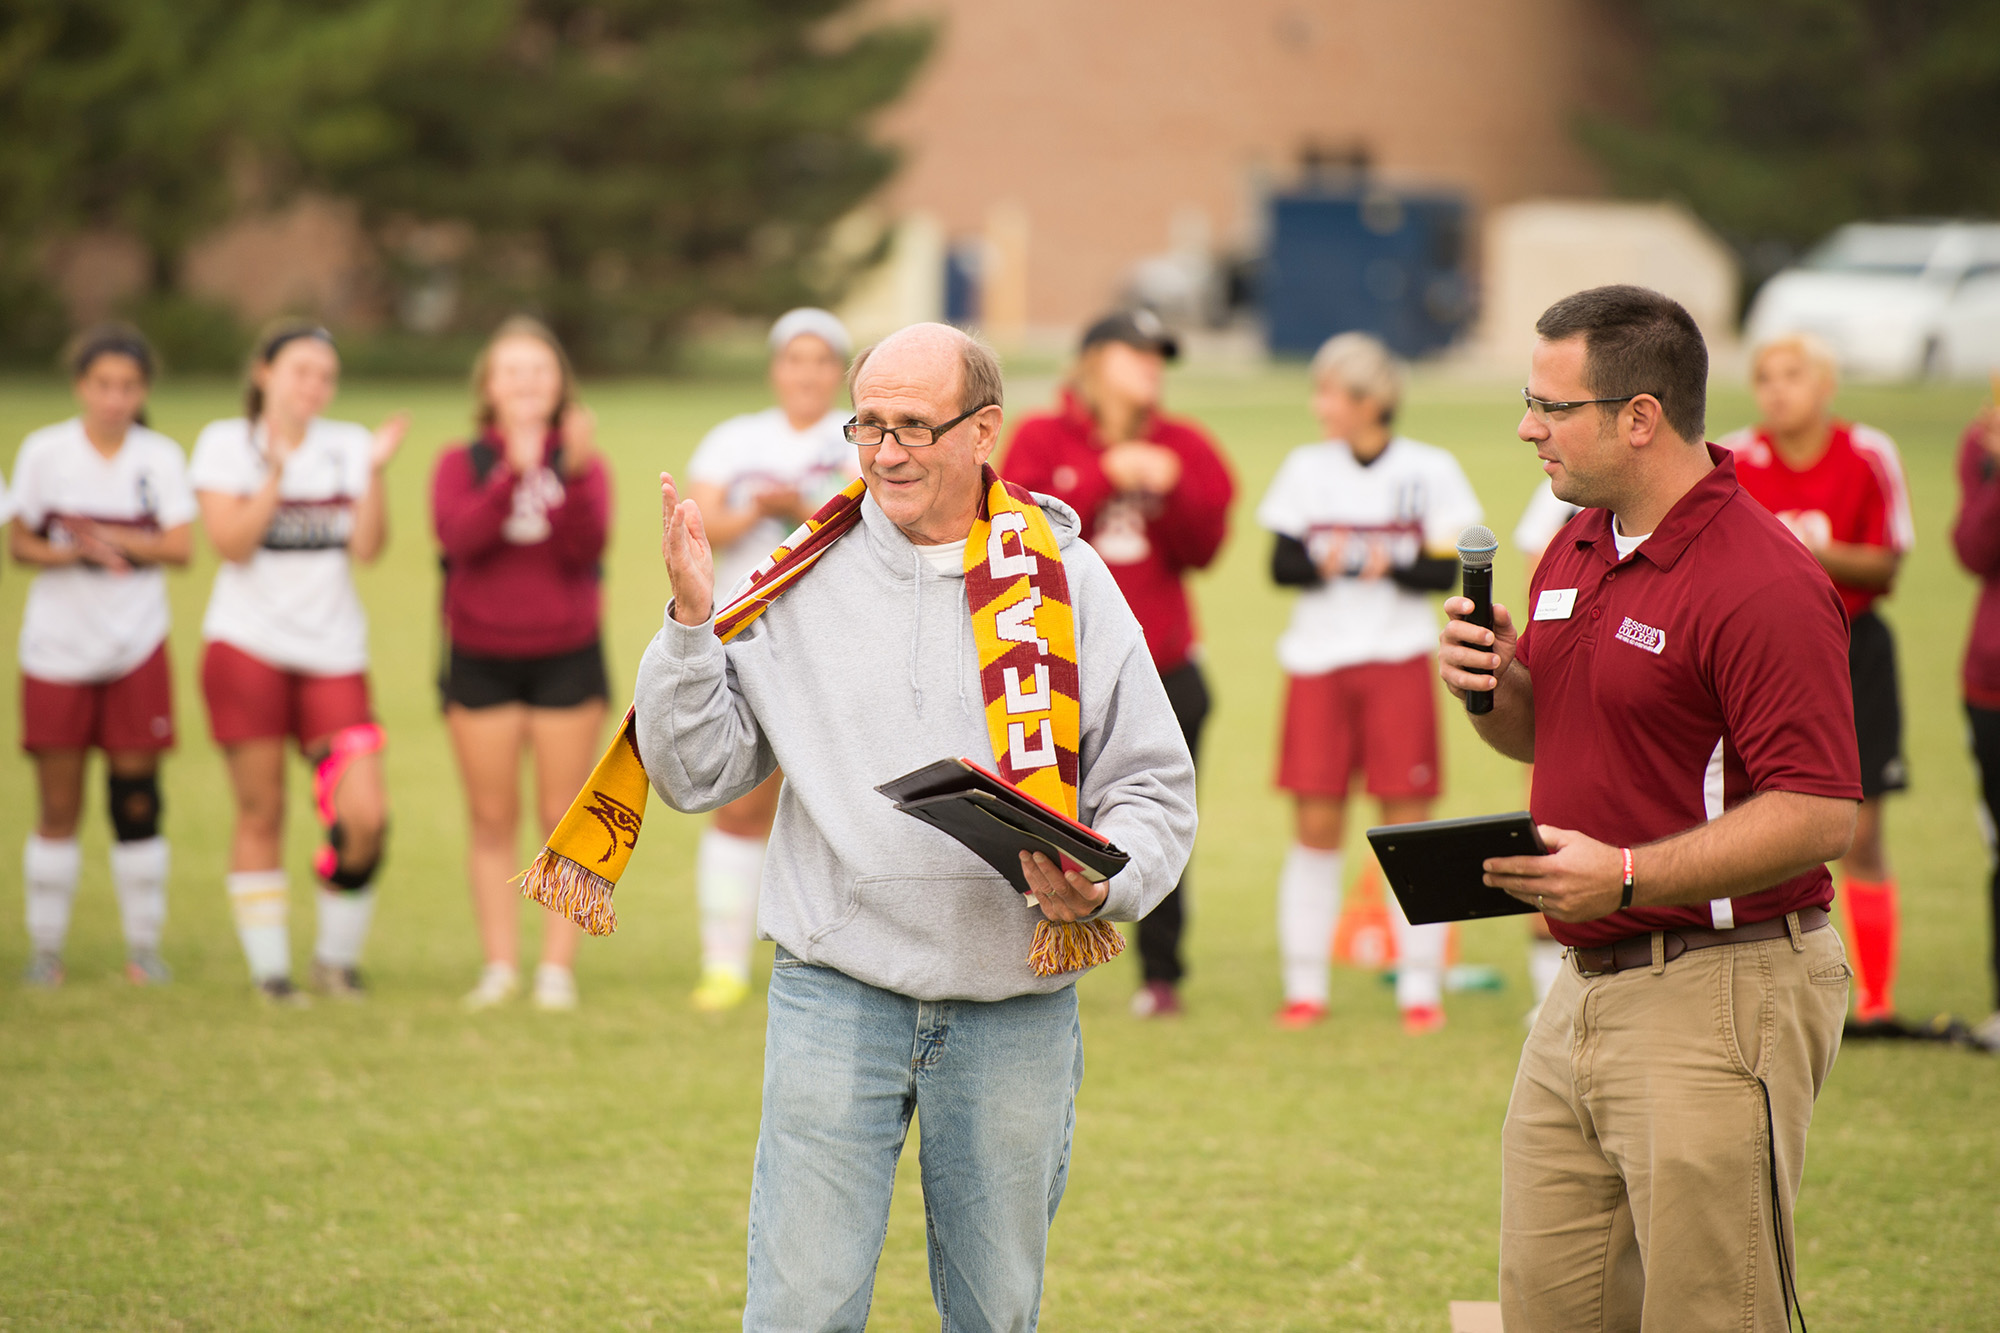 Gerry Sieber '64, faculty emeritus, addresses the crowd at the renaming of the soccer field.